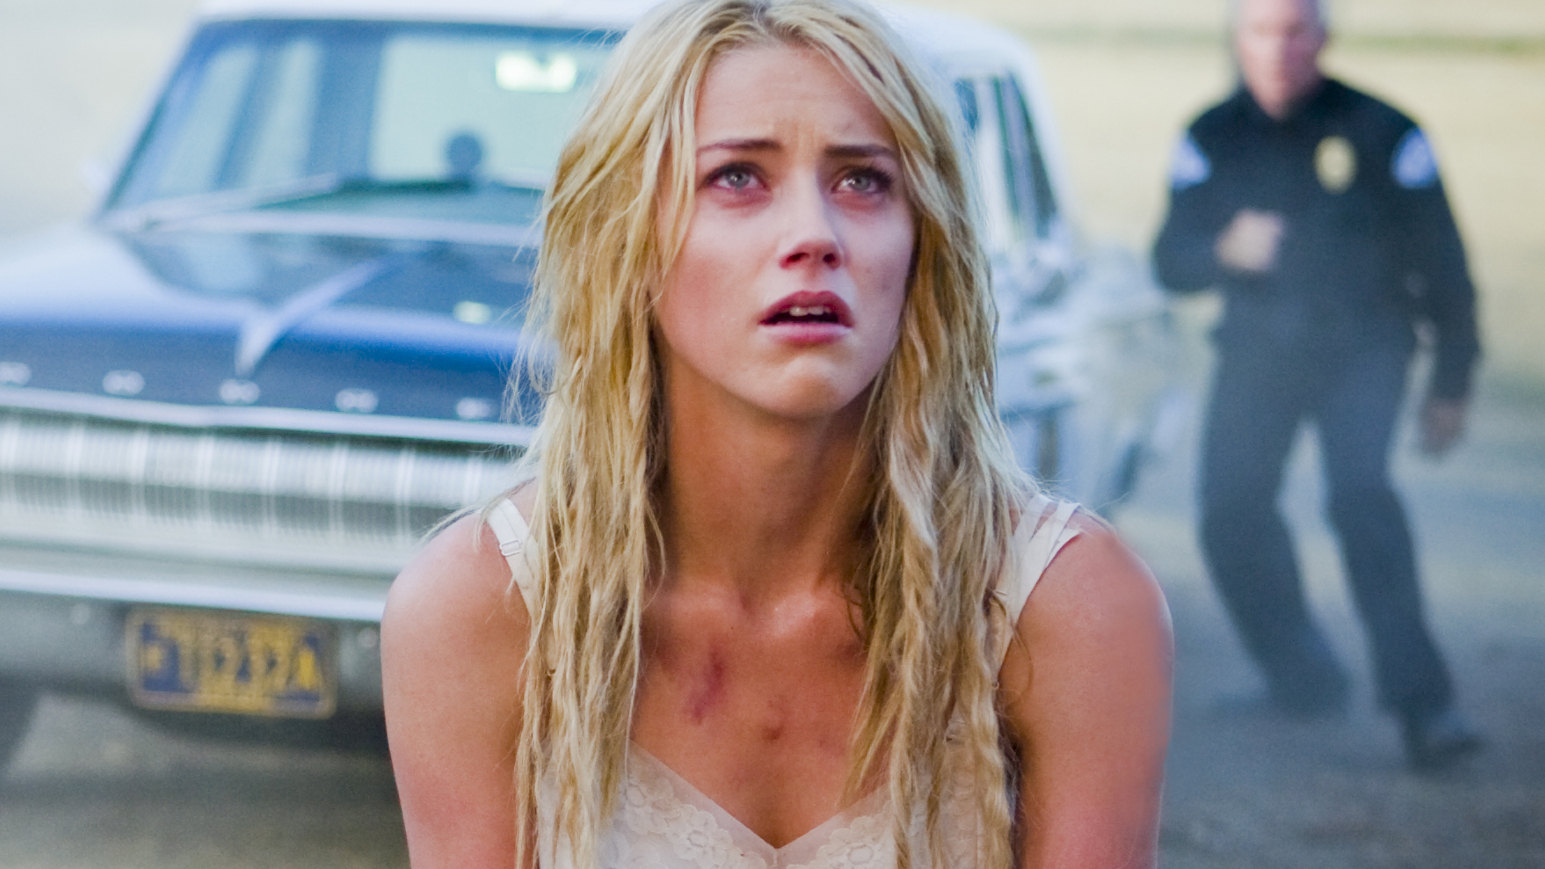 Amber Heard Video Gets Almost 300,000 Dislikes